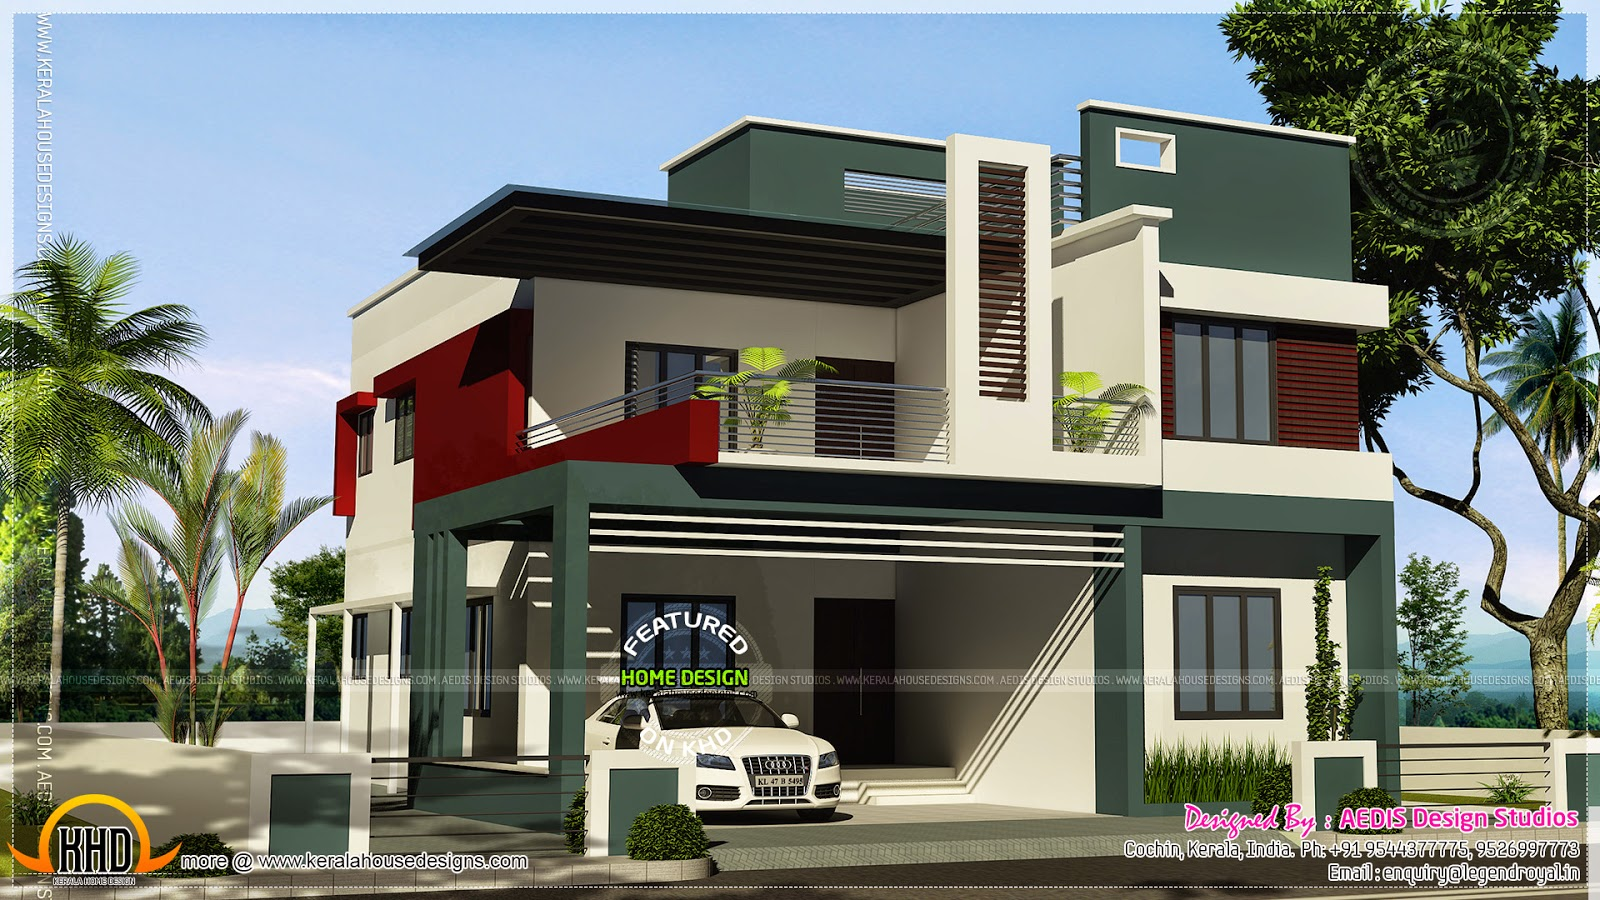 Mesmerizing South Indian Duplex House Plans With Elevation Free ...